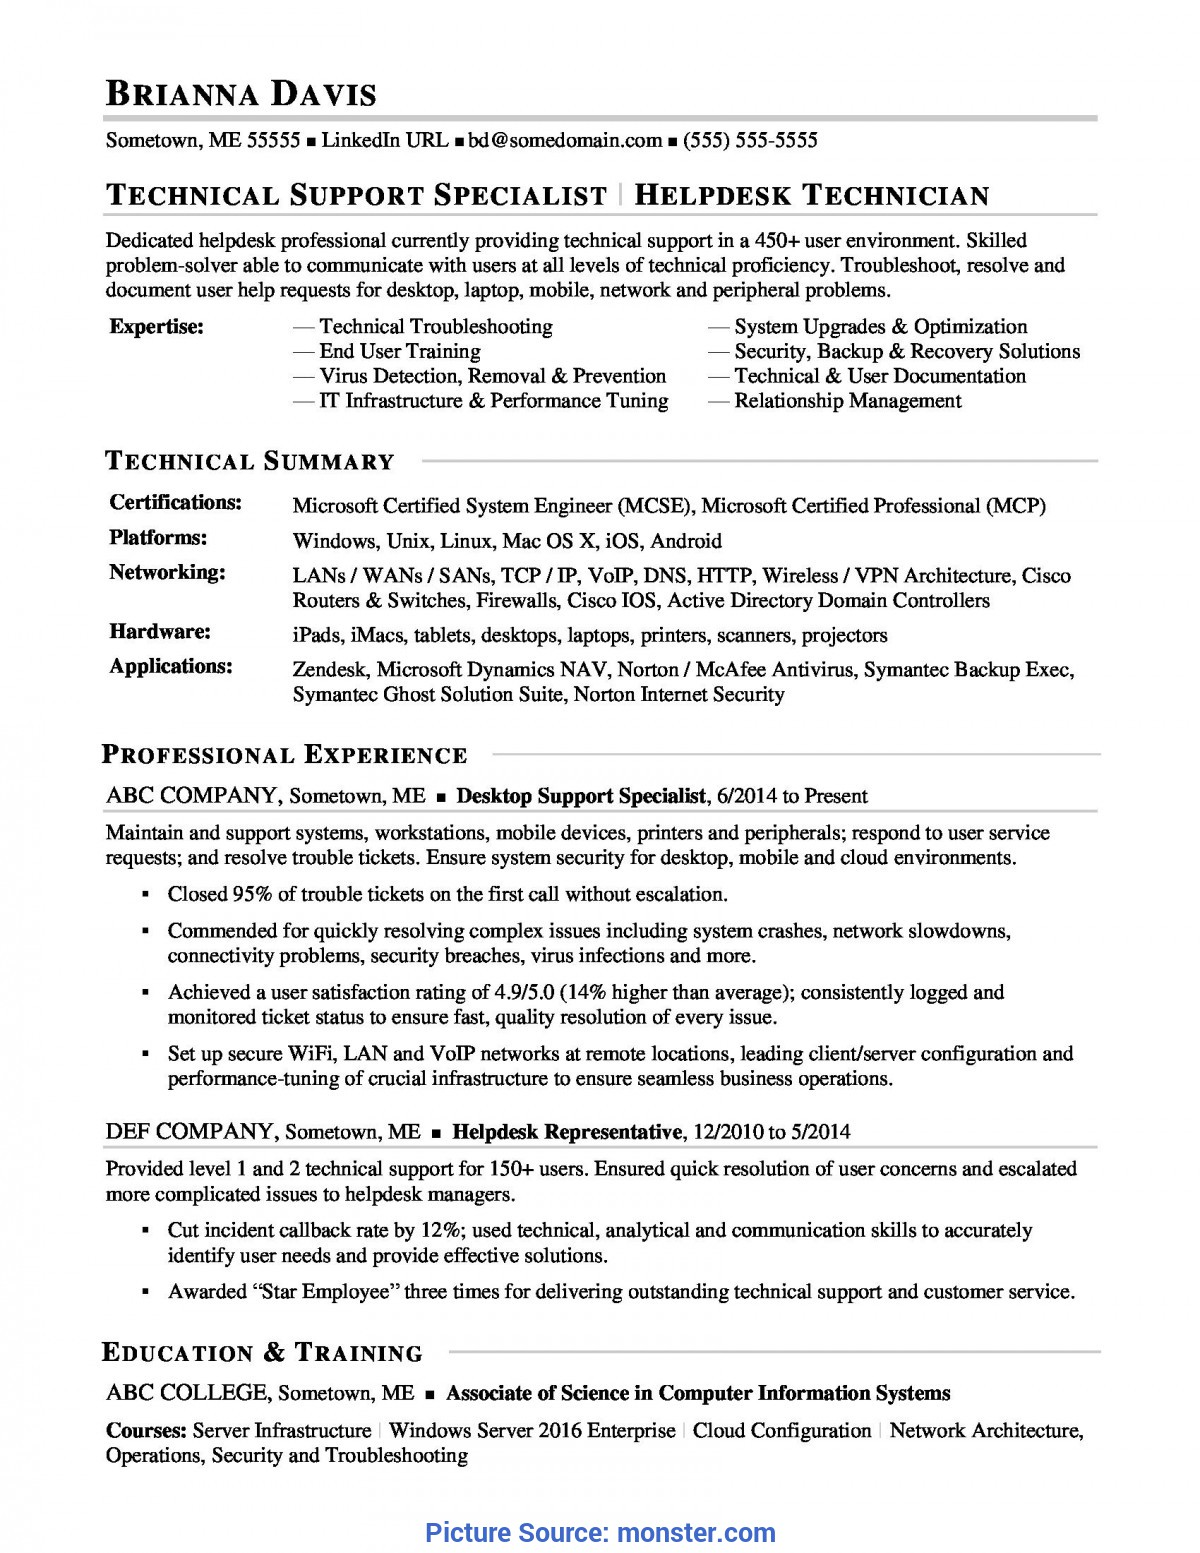 Regular Tpa 4 Sample Sample Resume For Experienced It Help Desk Employee | Monster